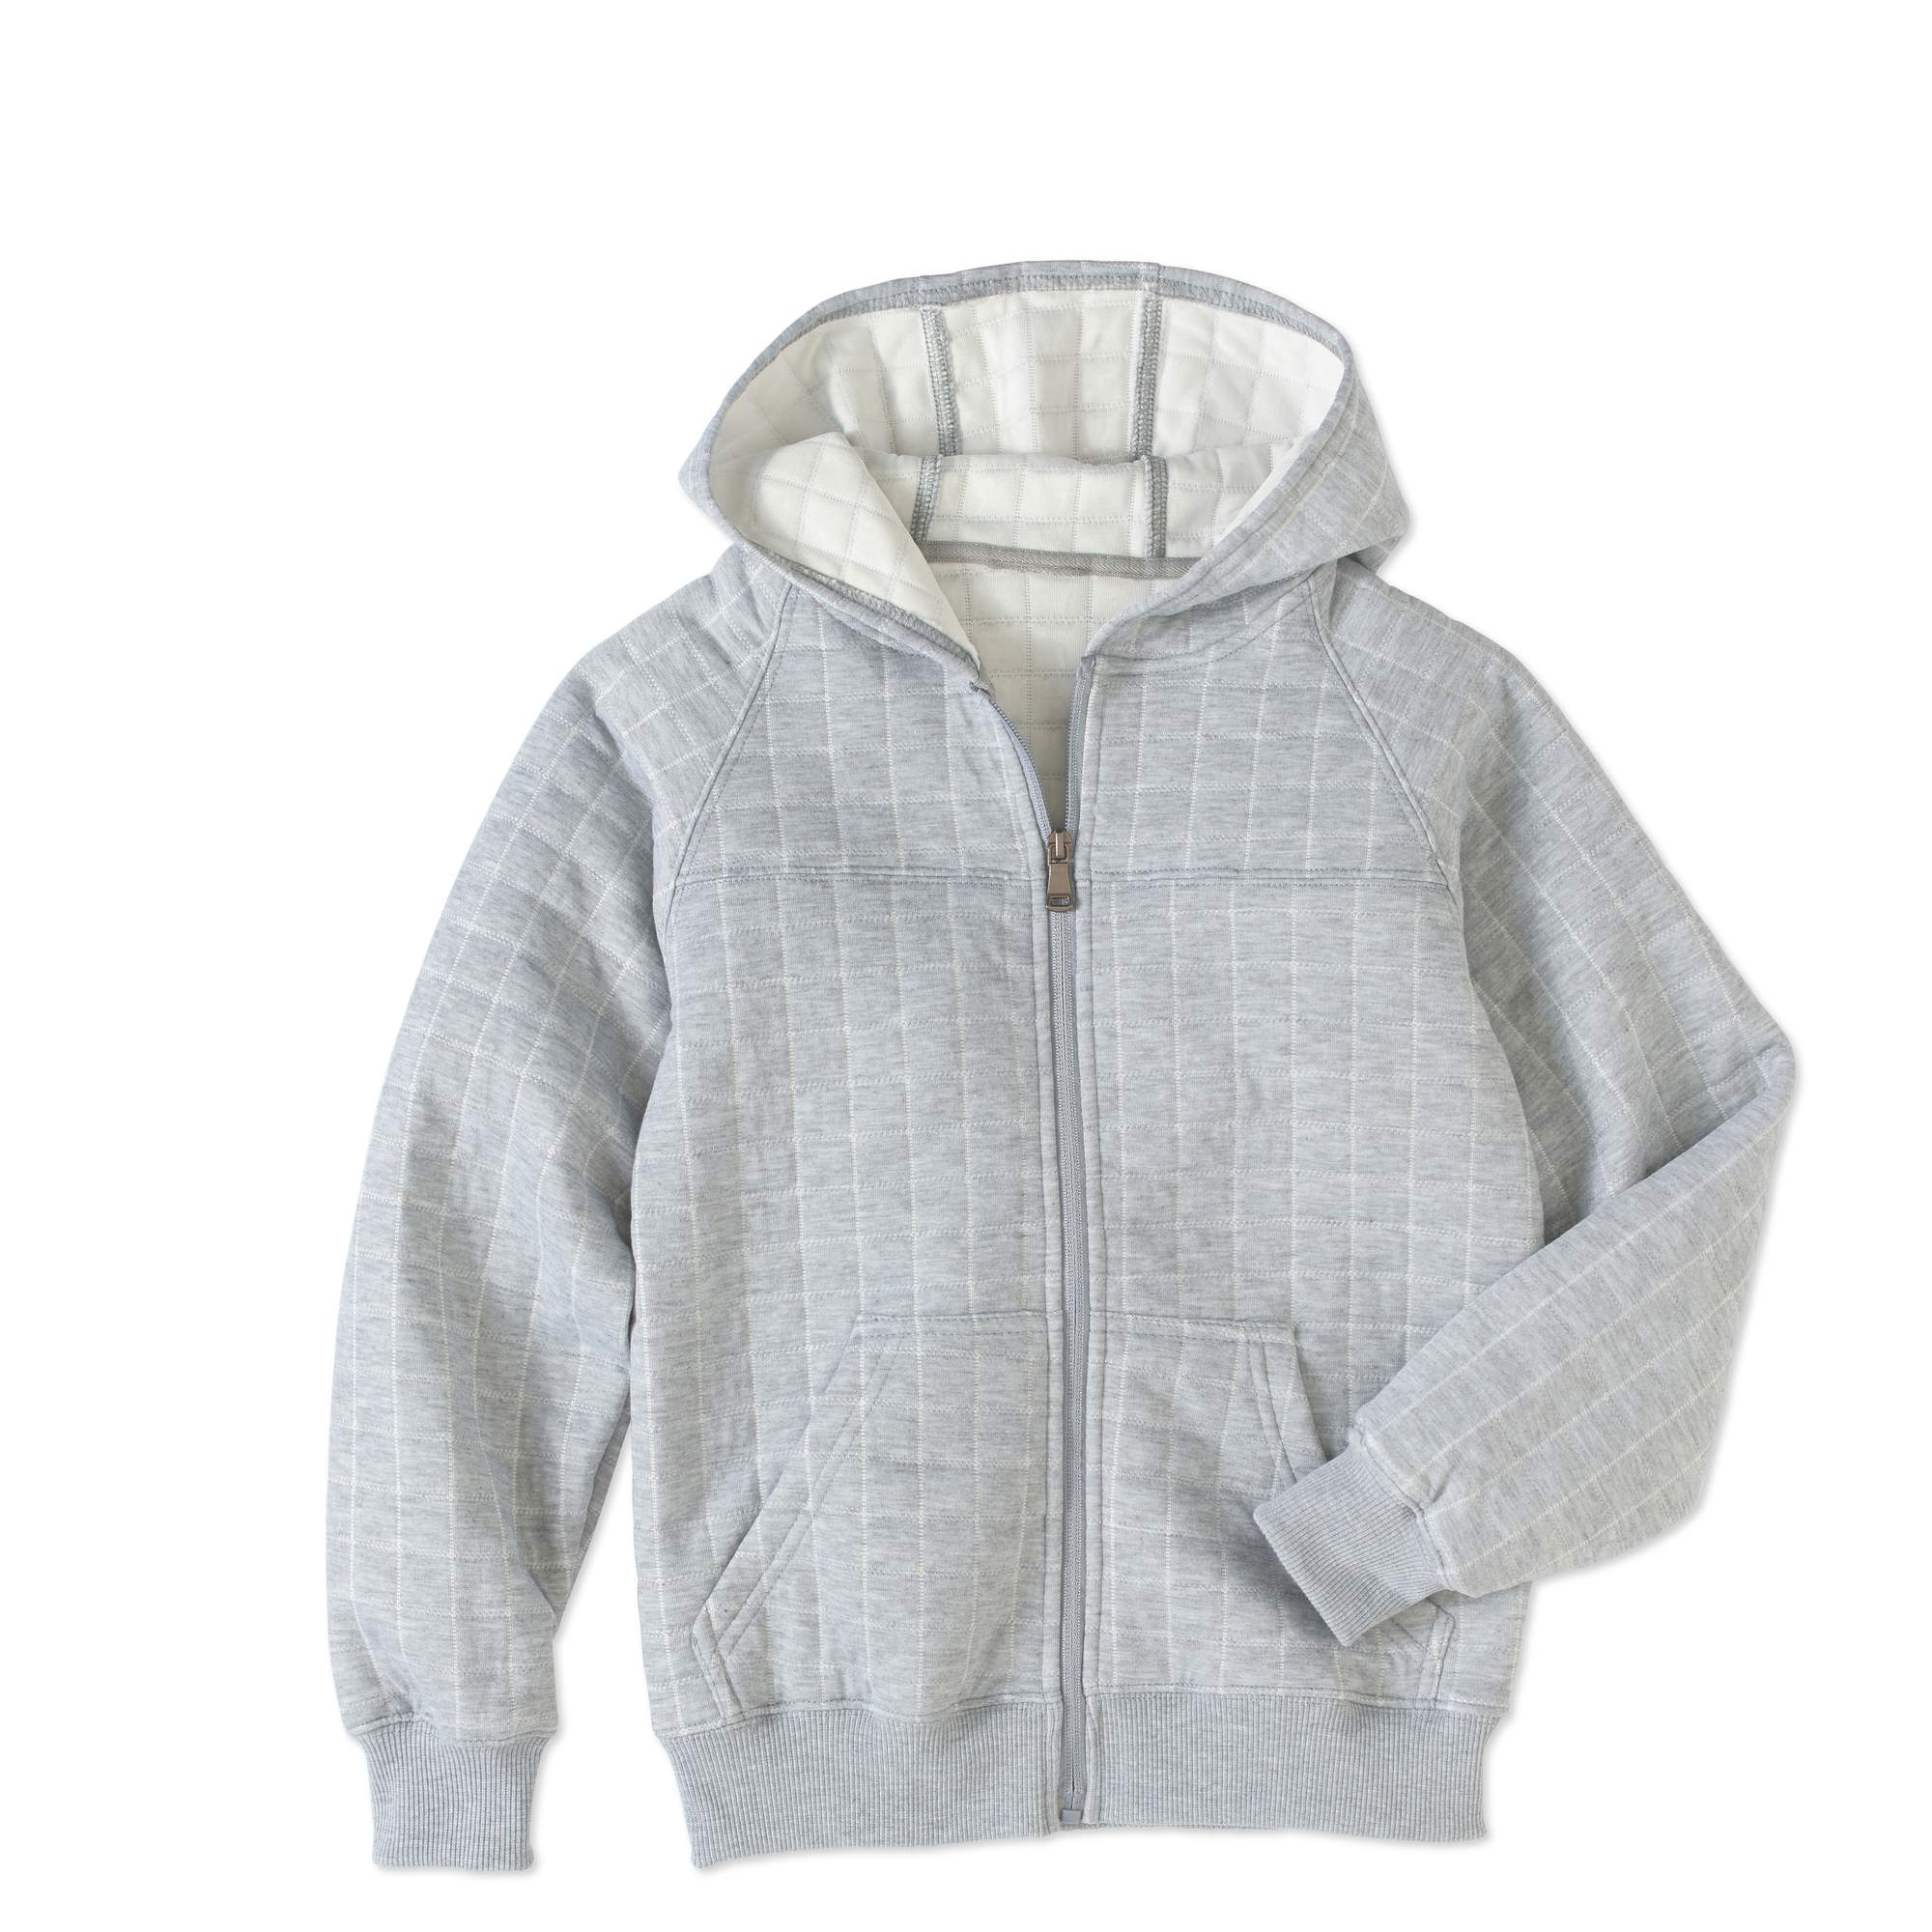 Bocini Boys' Solid Unlined Jacket